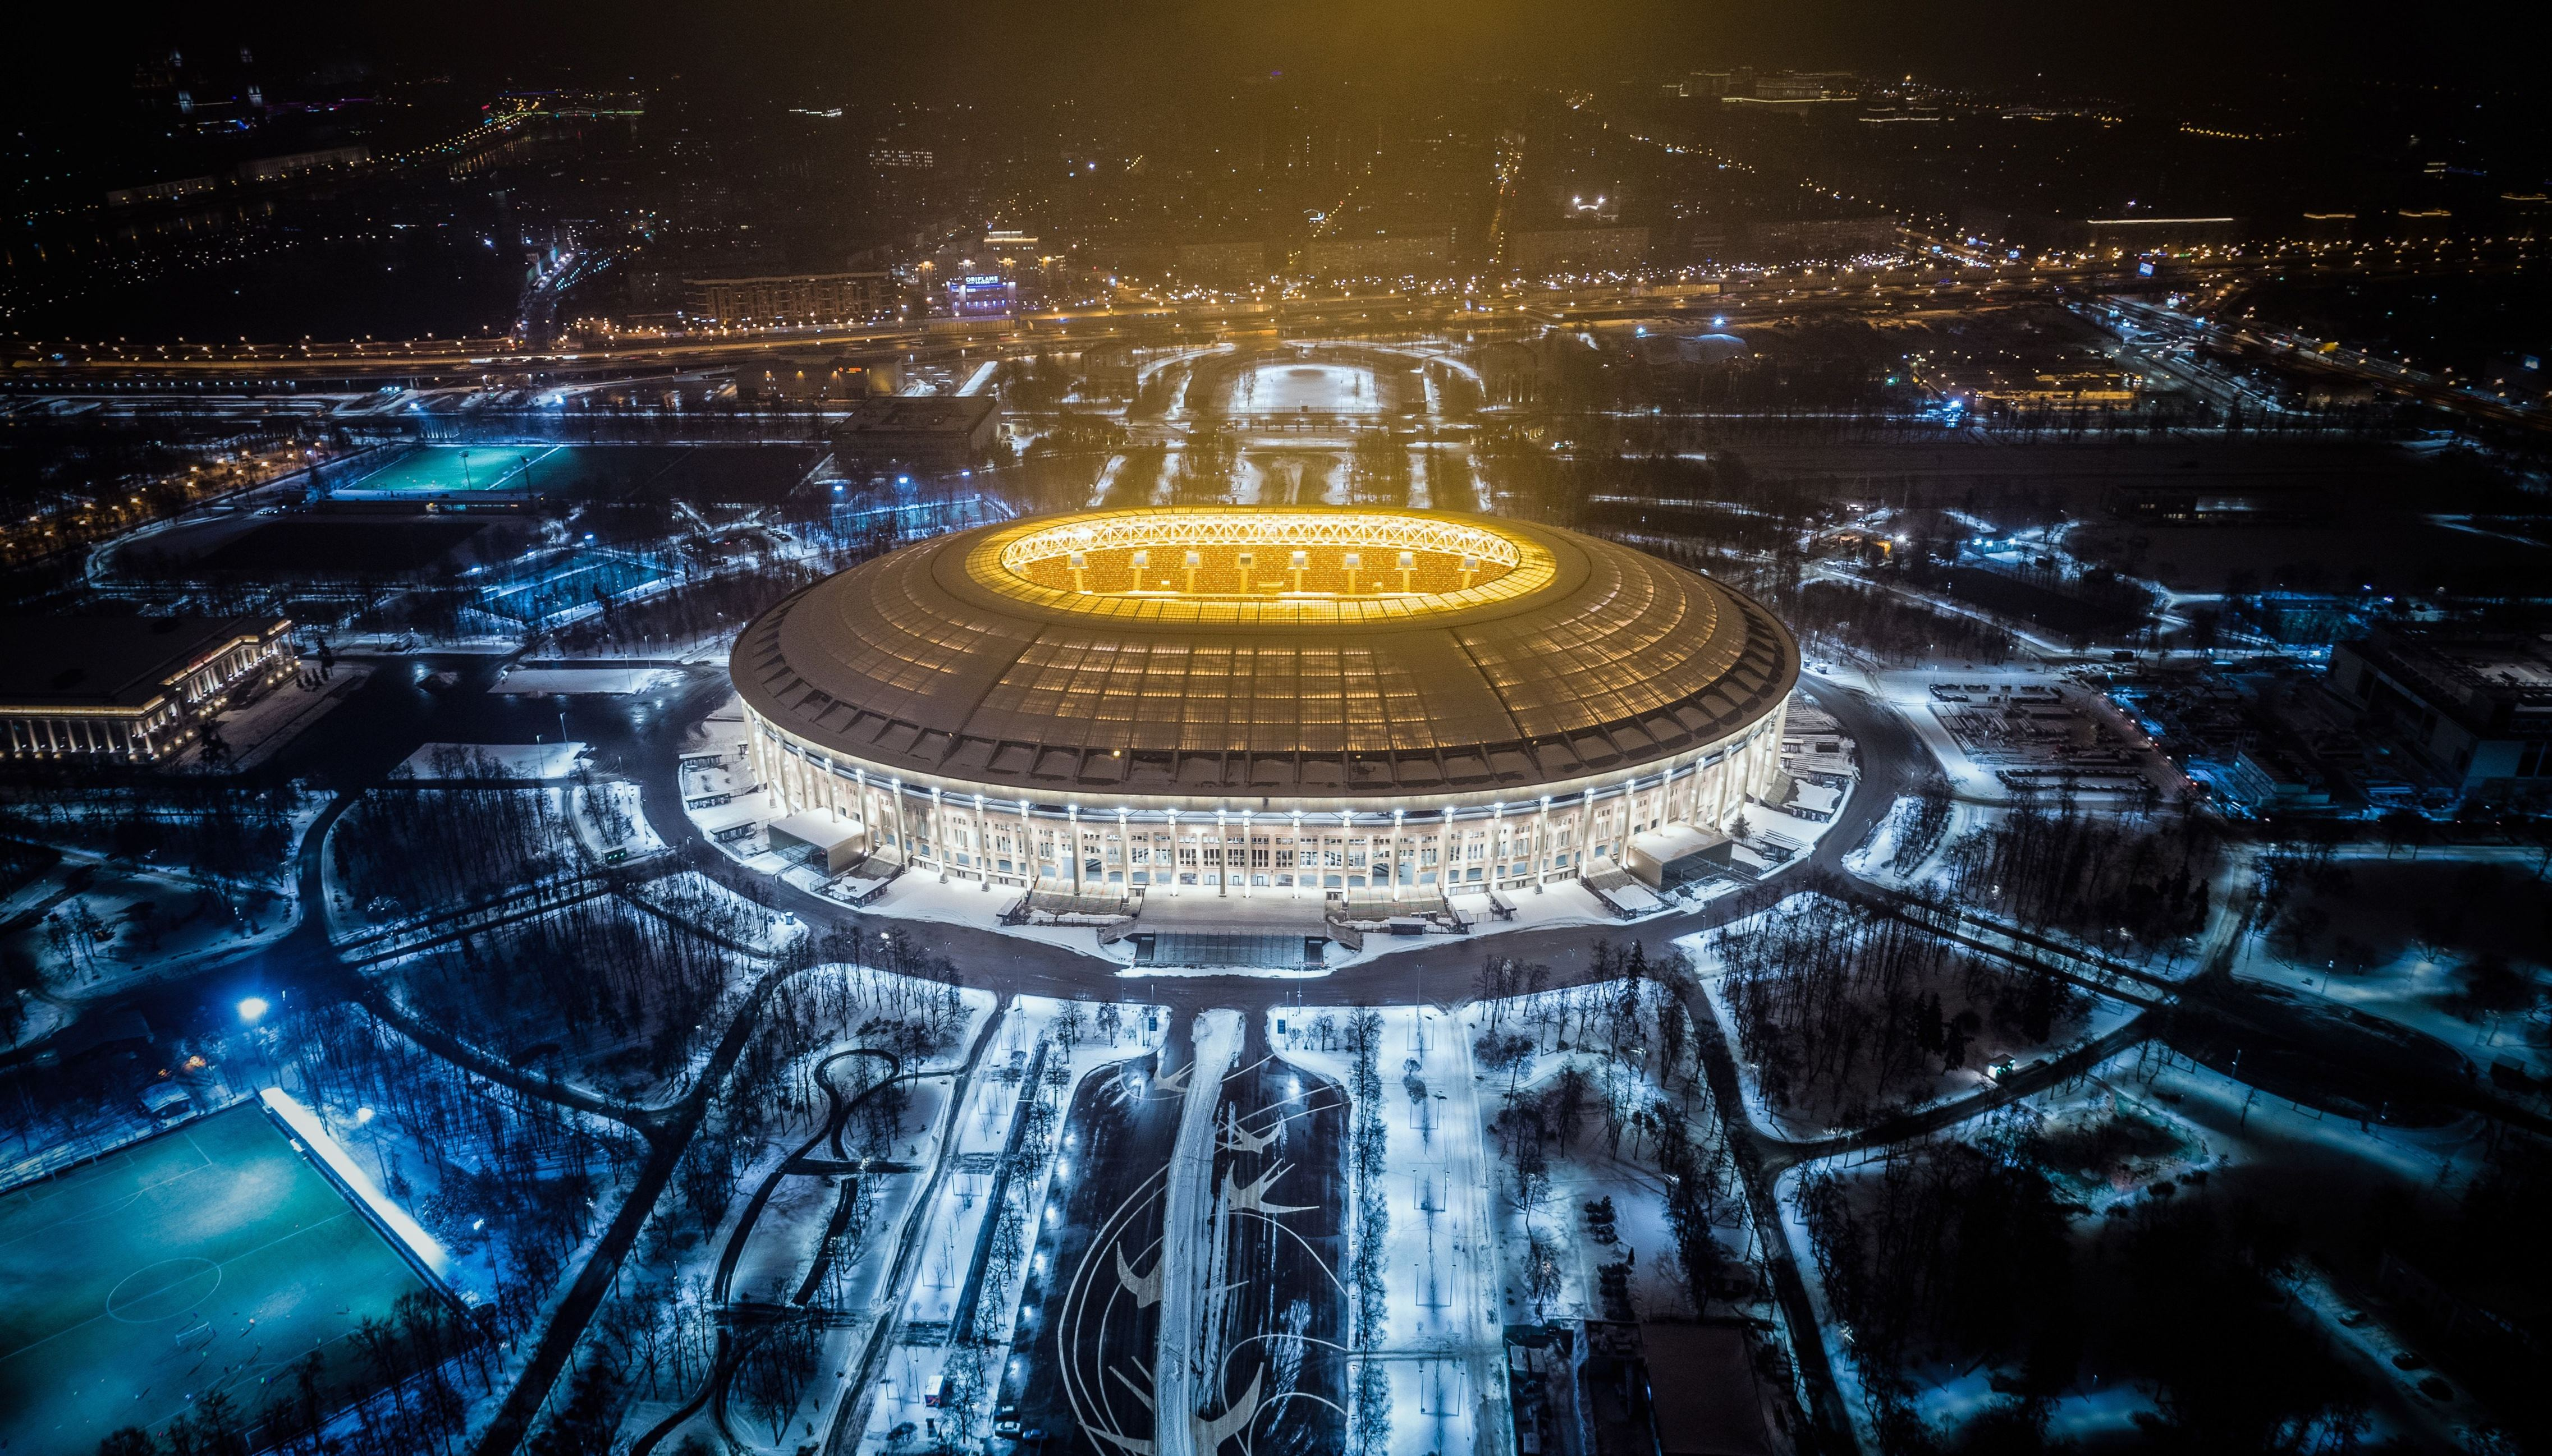 Slide 56 of 73: An aerial view taken with a drone shows Luzhniki Stadium in Moscow on January 24, 2018. Luzhniki Stadium will host seven matches including the final of the 2018 FIFA World Cup football tournament. / AFP PHOTO / DMITRY SEREBRYAKOV